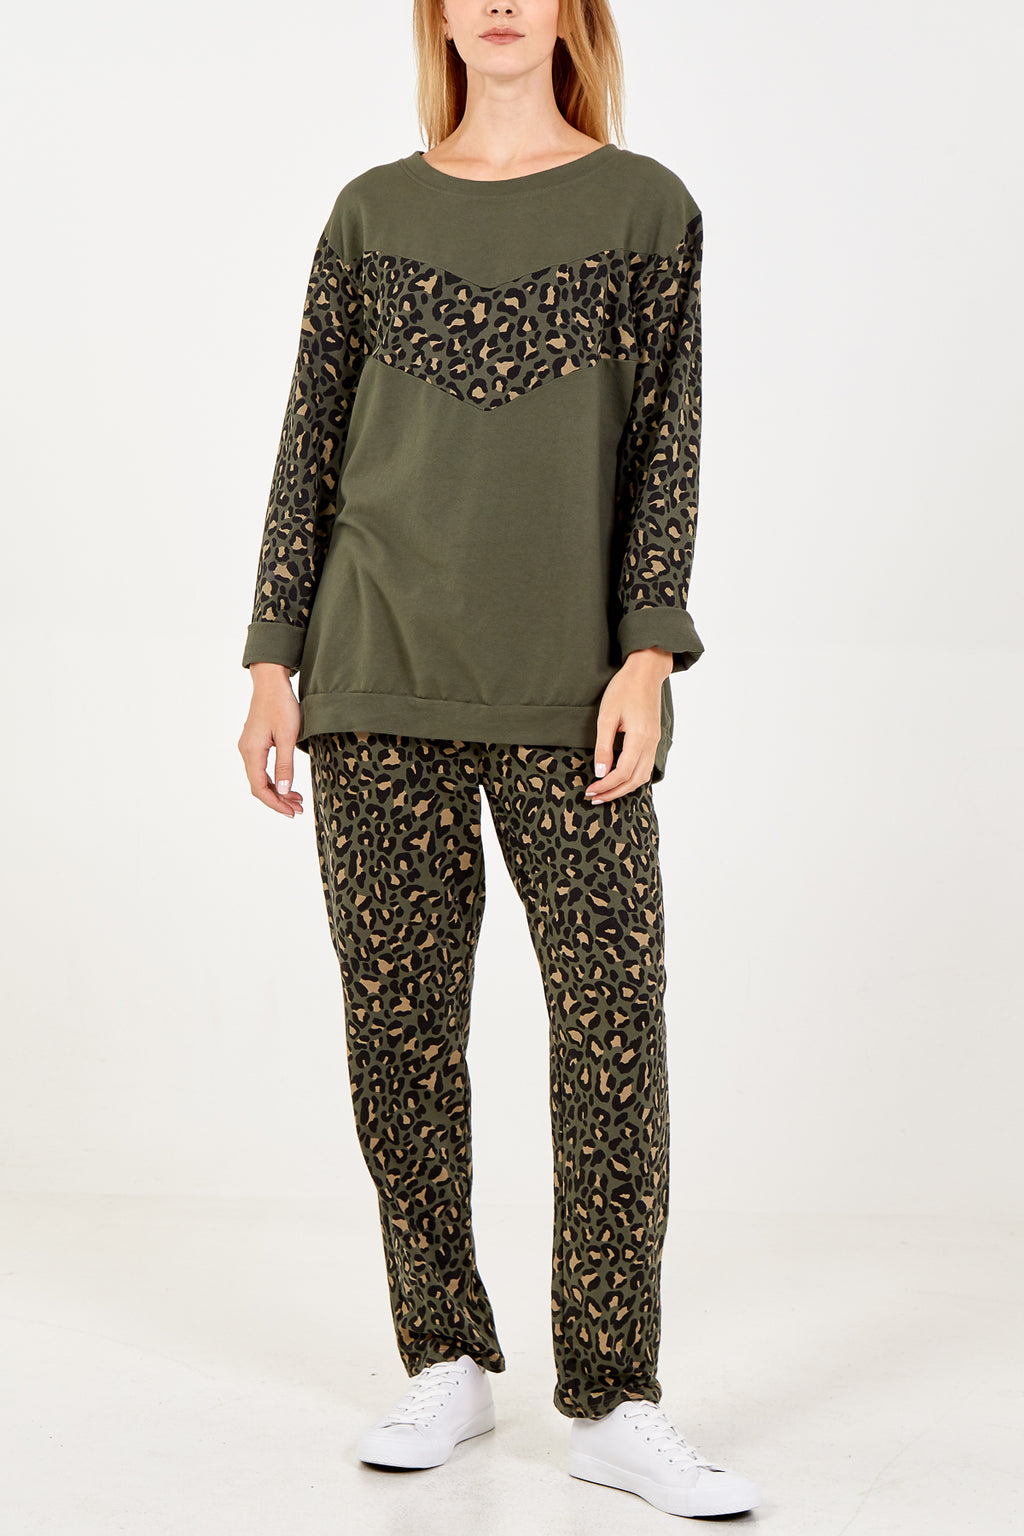 Leopard Panel & Sleeve Lounge Set